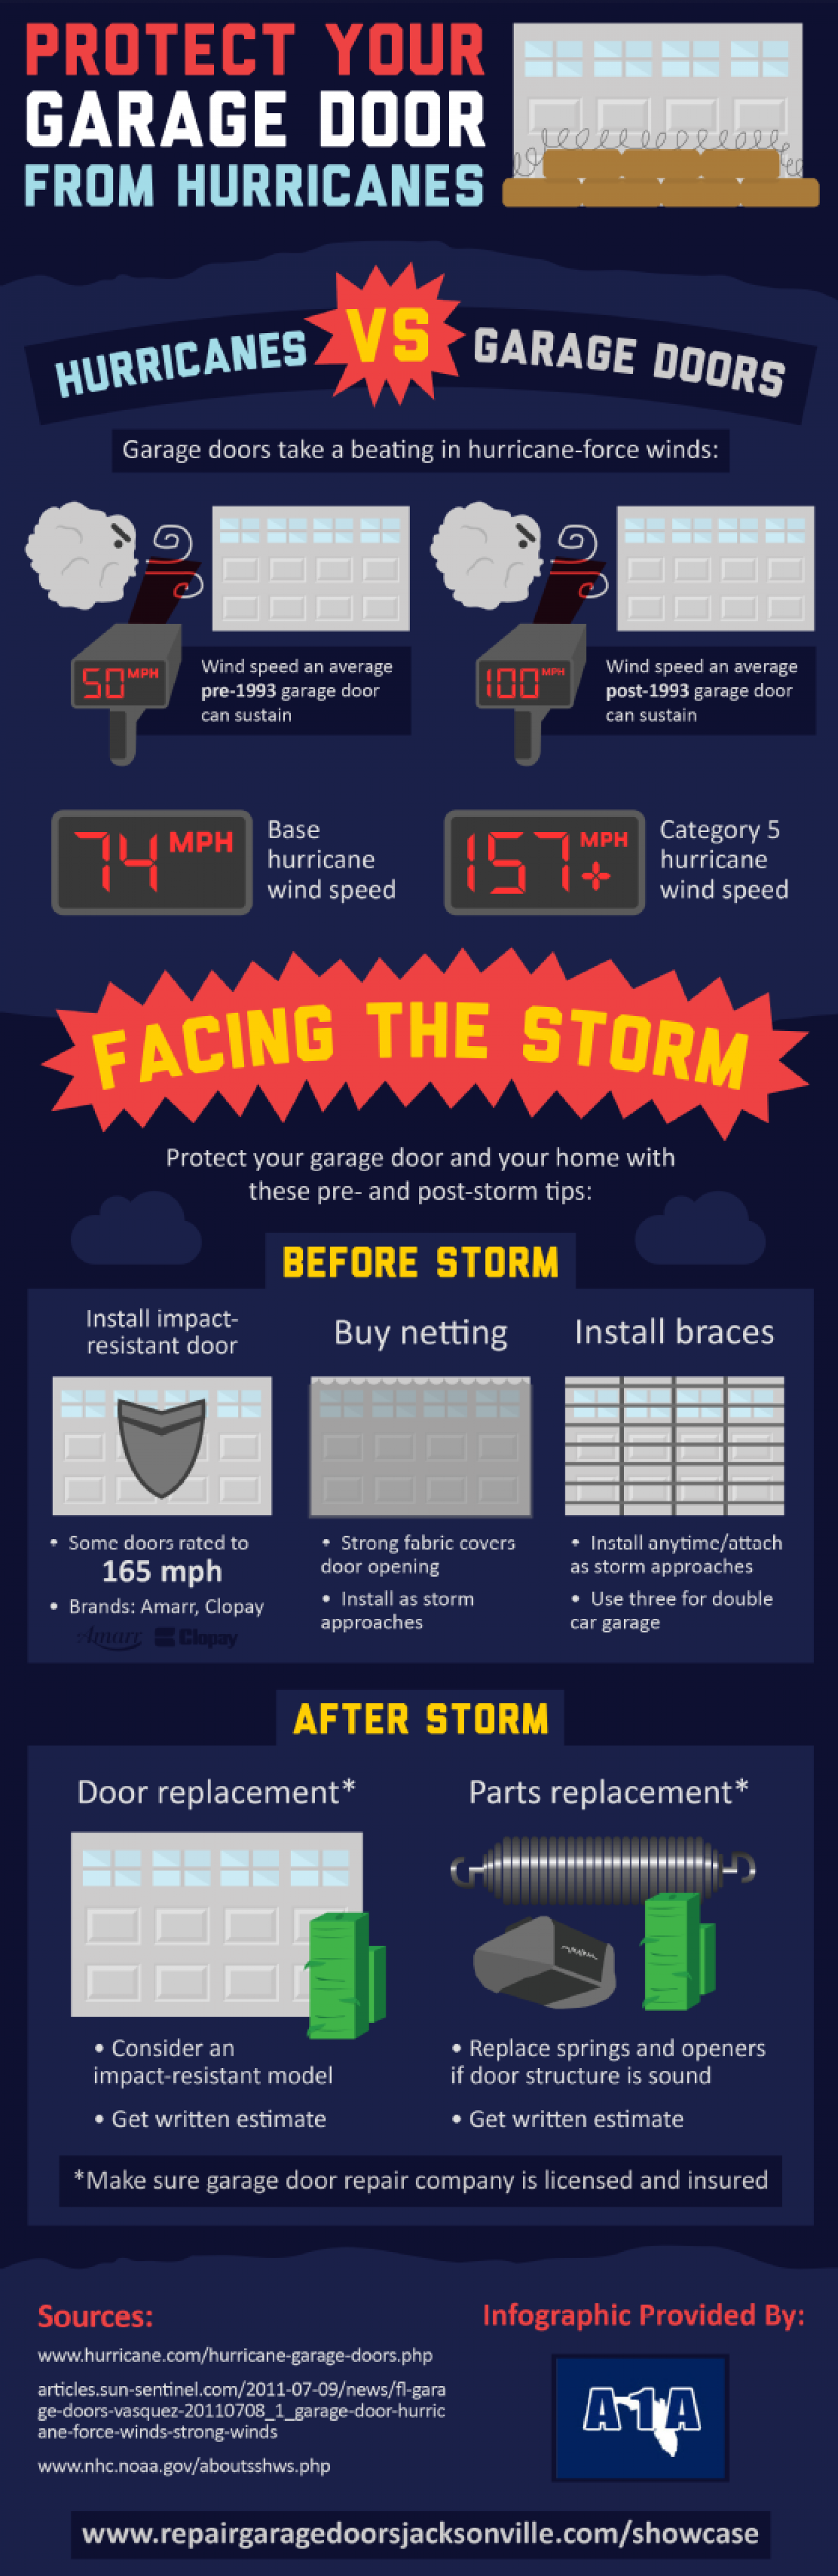 Protect Your Garage Door from Hurricanes Infographic